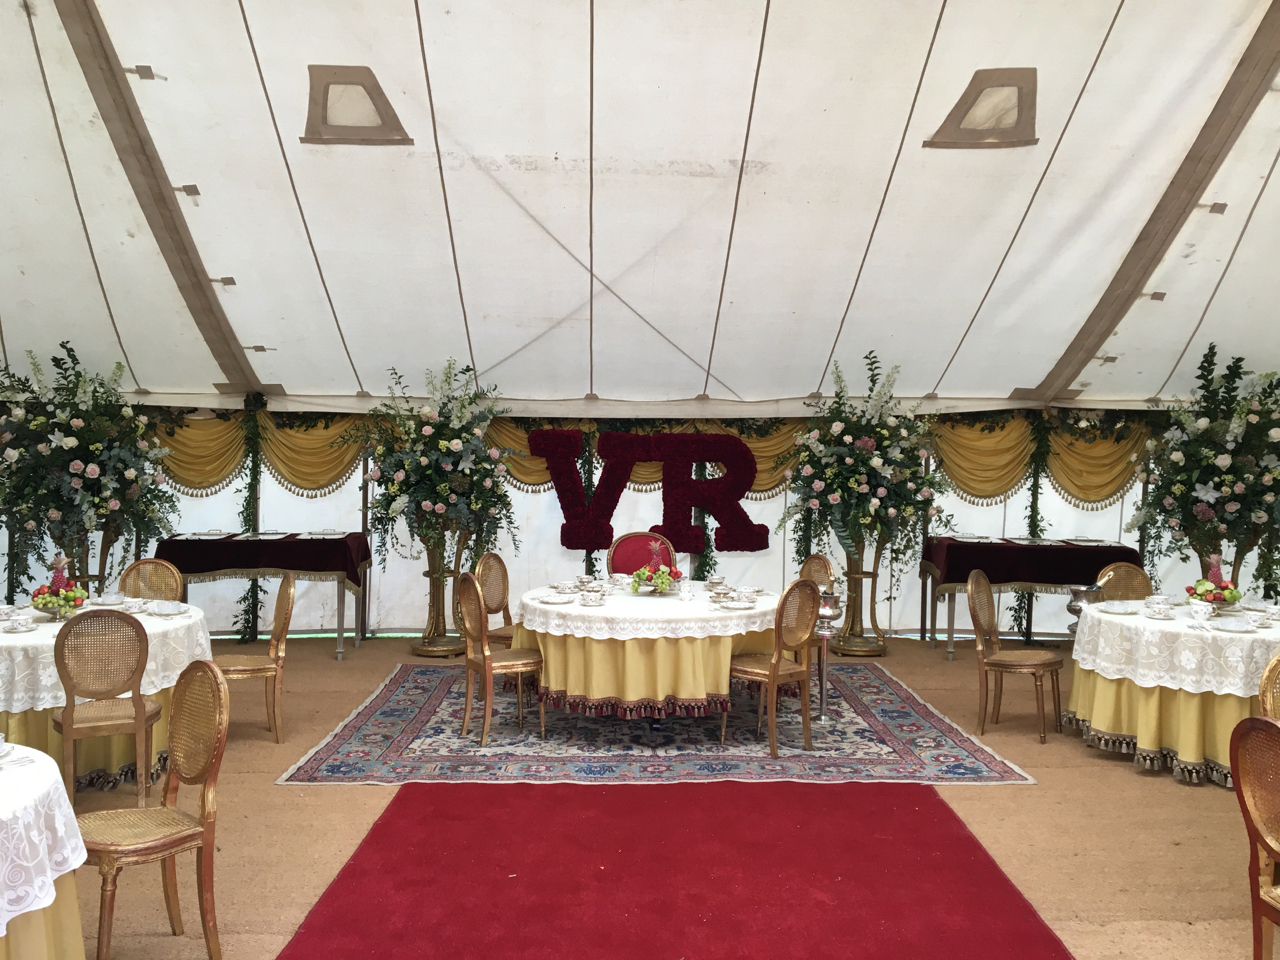 V&A_Queens Lunch Marquee 02_Adam Squires_2016.jpg